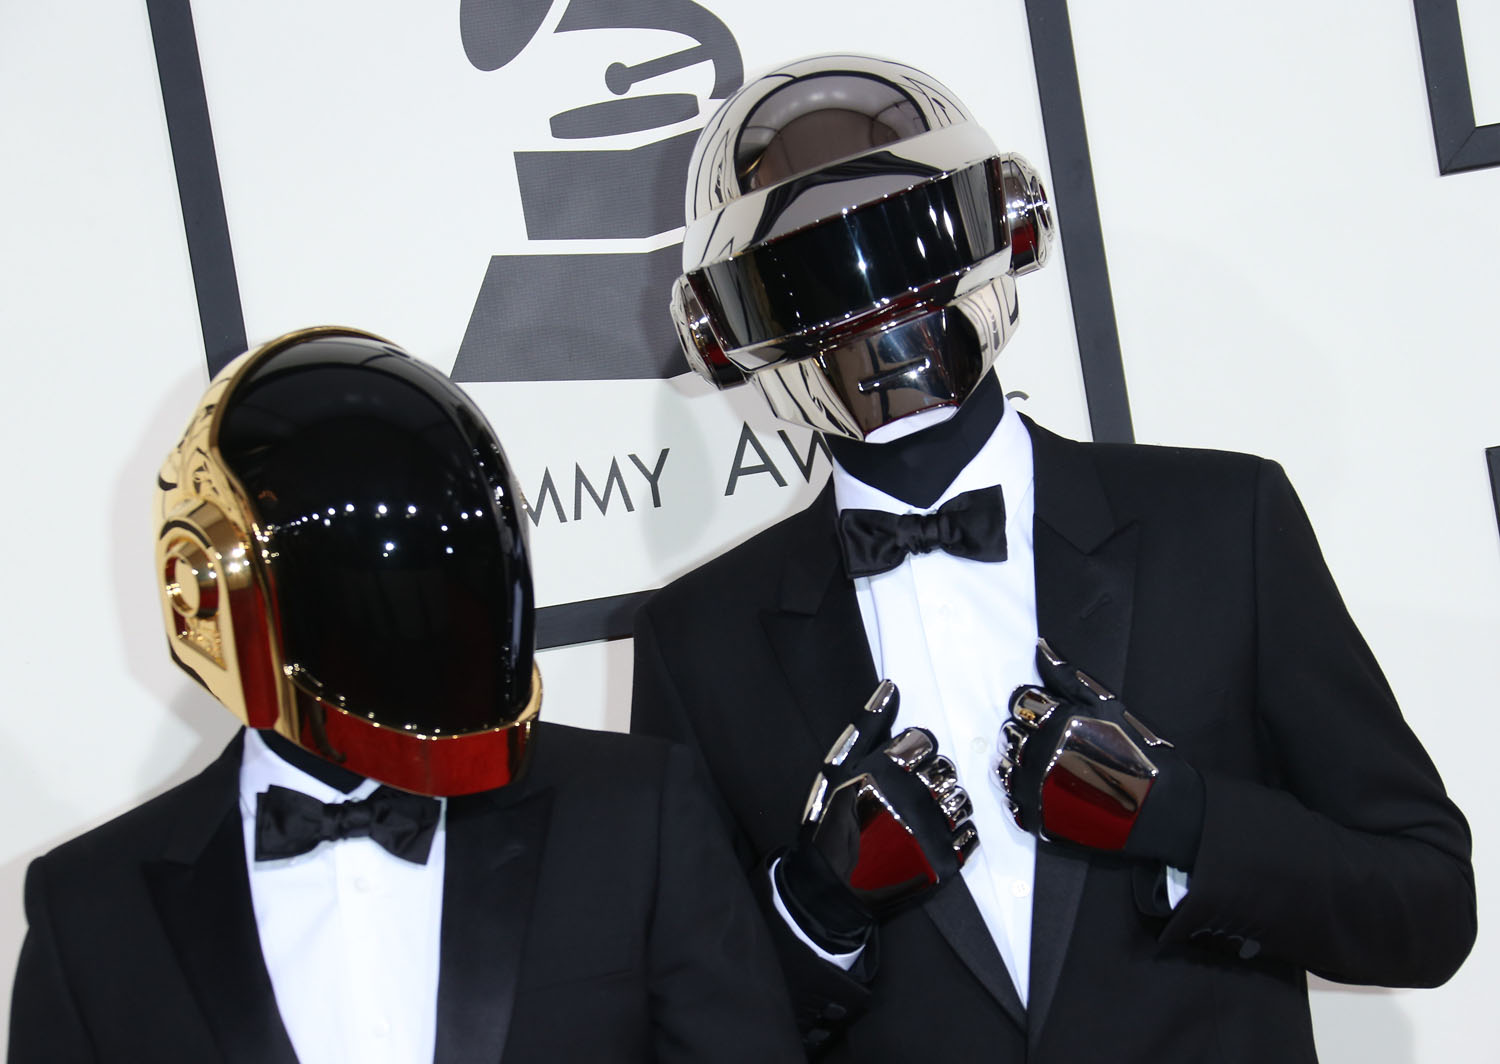 Thomas Bangalter and Guy-Manuel de Homem-Christo of 'Daft Punk' arrive at the 56th Annual GRAMMY Awards at Staples Center on January 26, 2014 in Los Angeles, California.